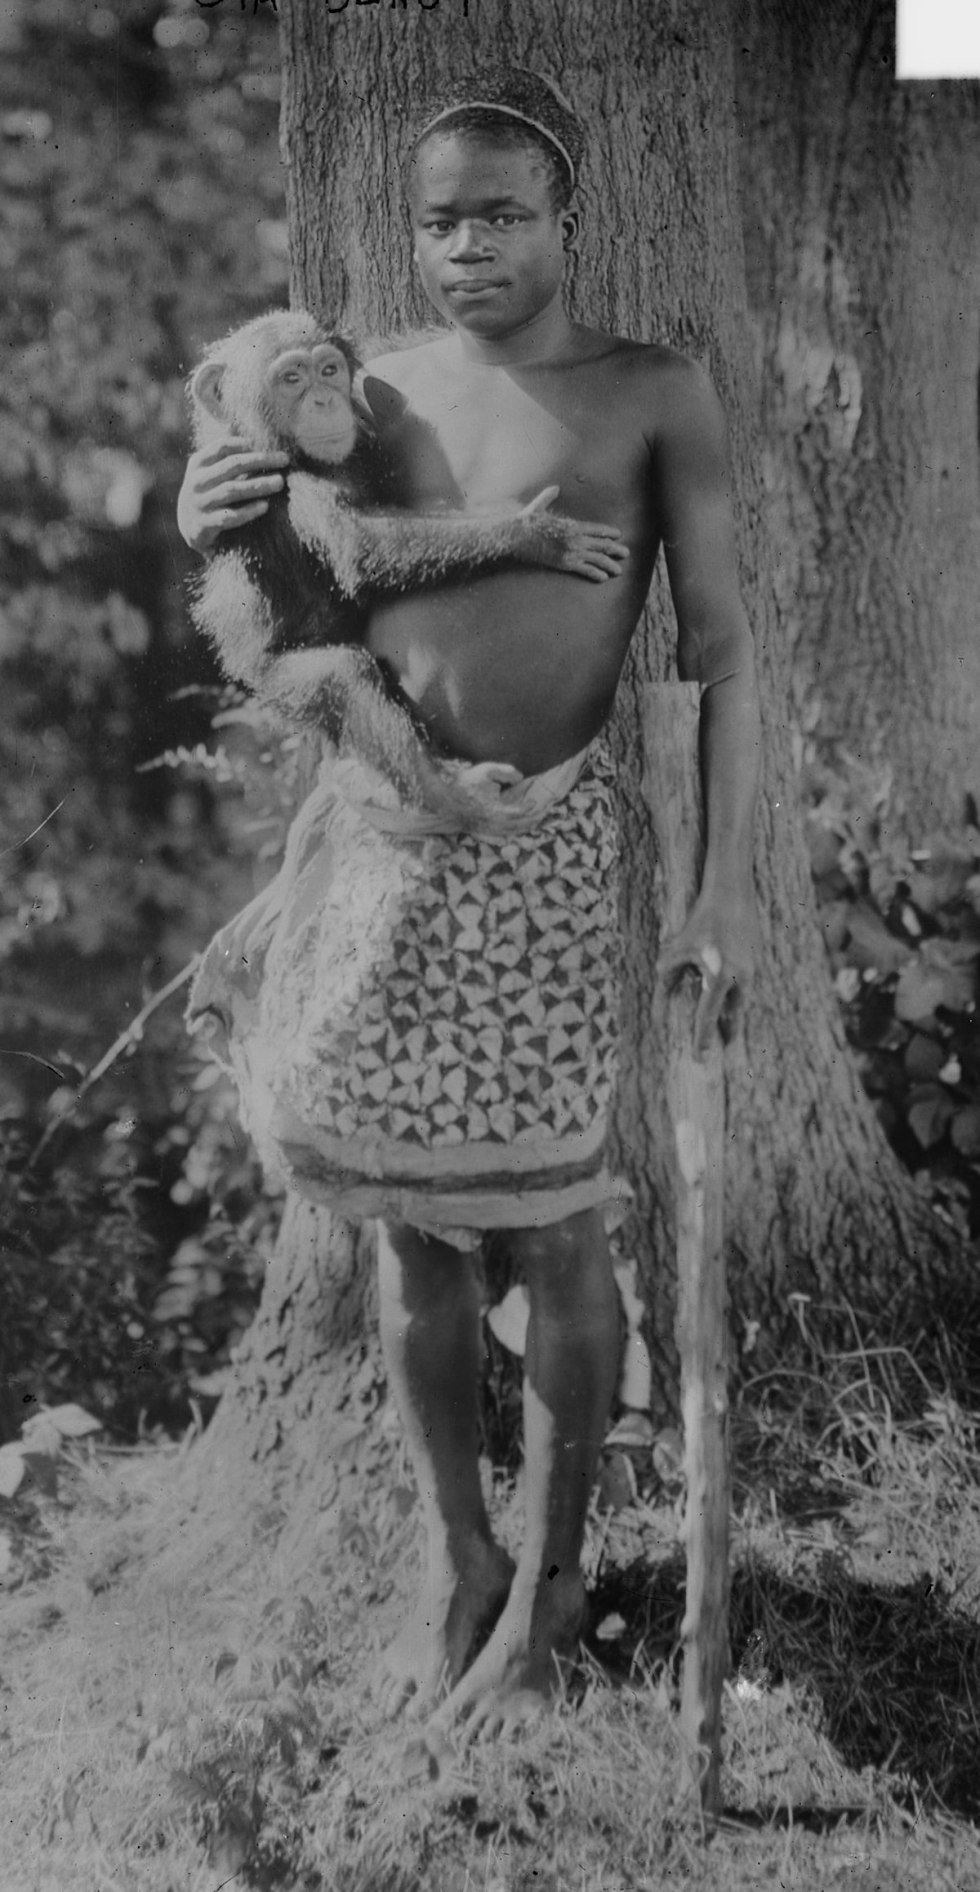 Ota Benga at the Bronx Zoo holding a chimpanzee